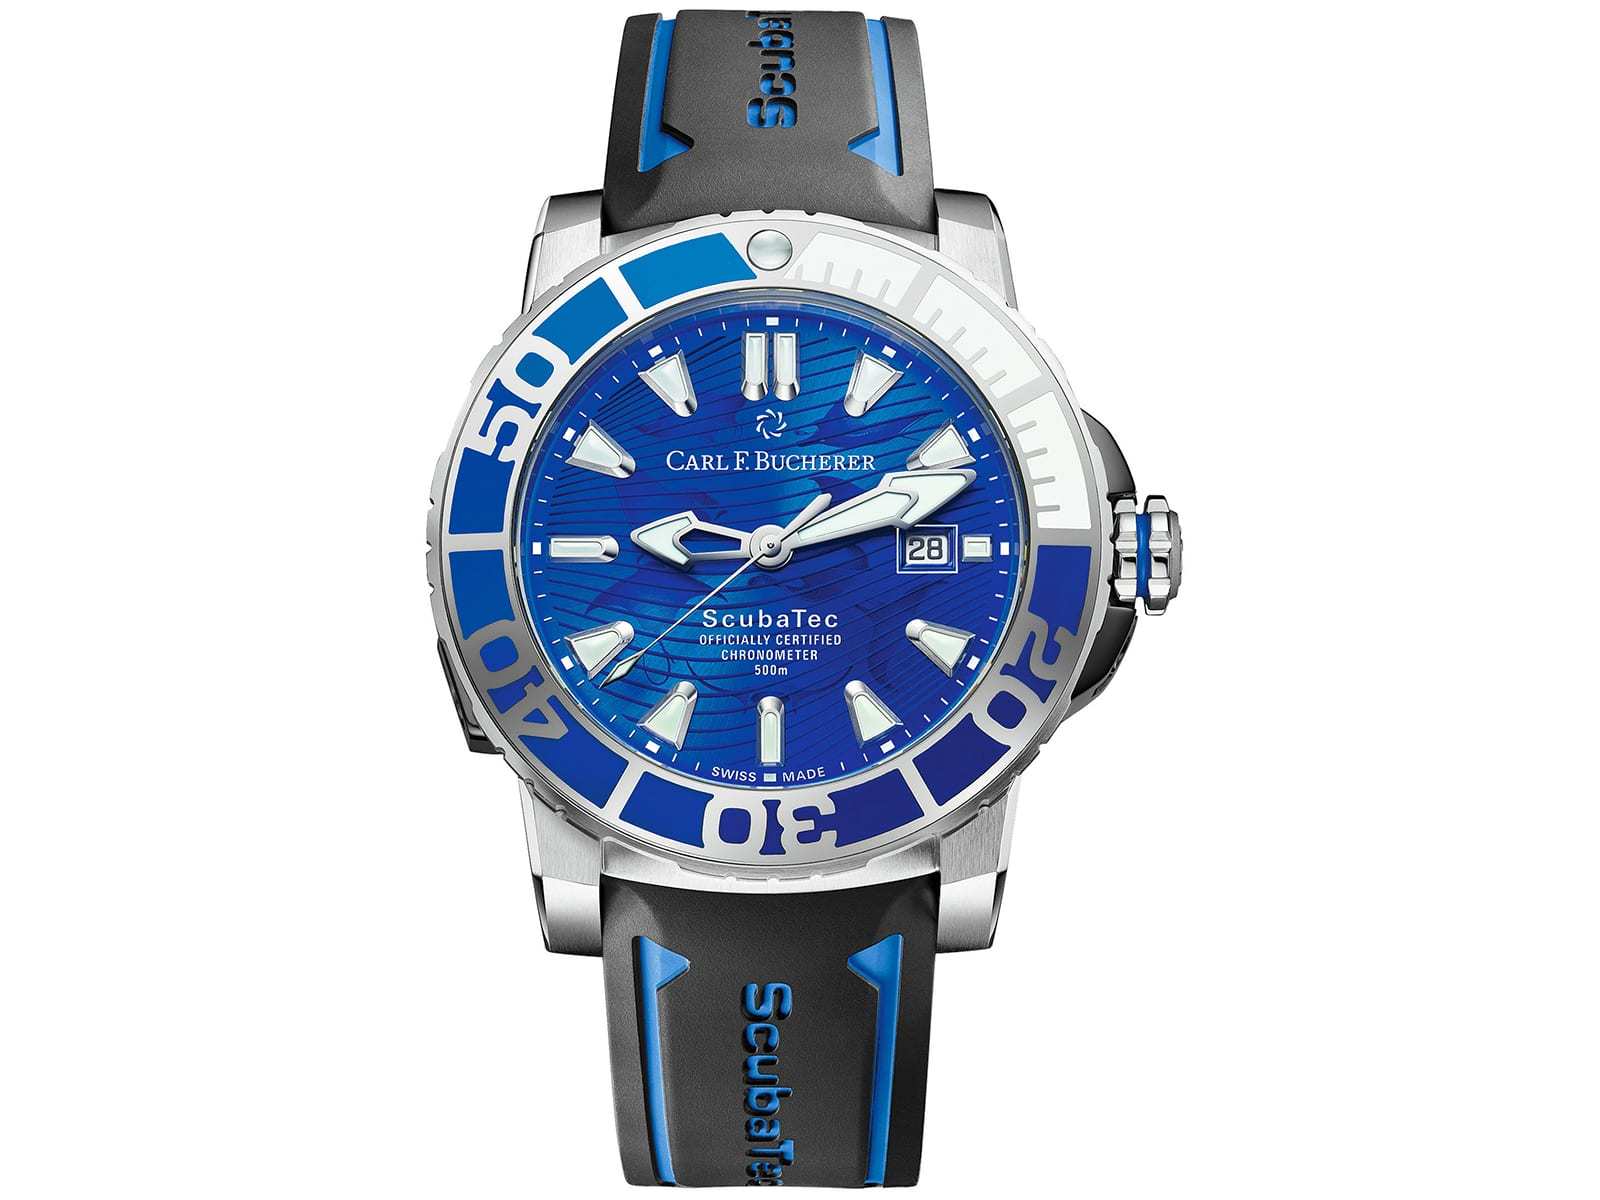 carl-f-bucherer-patravi-scubatec-only-watch-2019.jpg